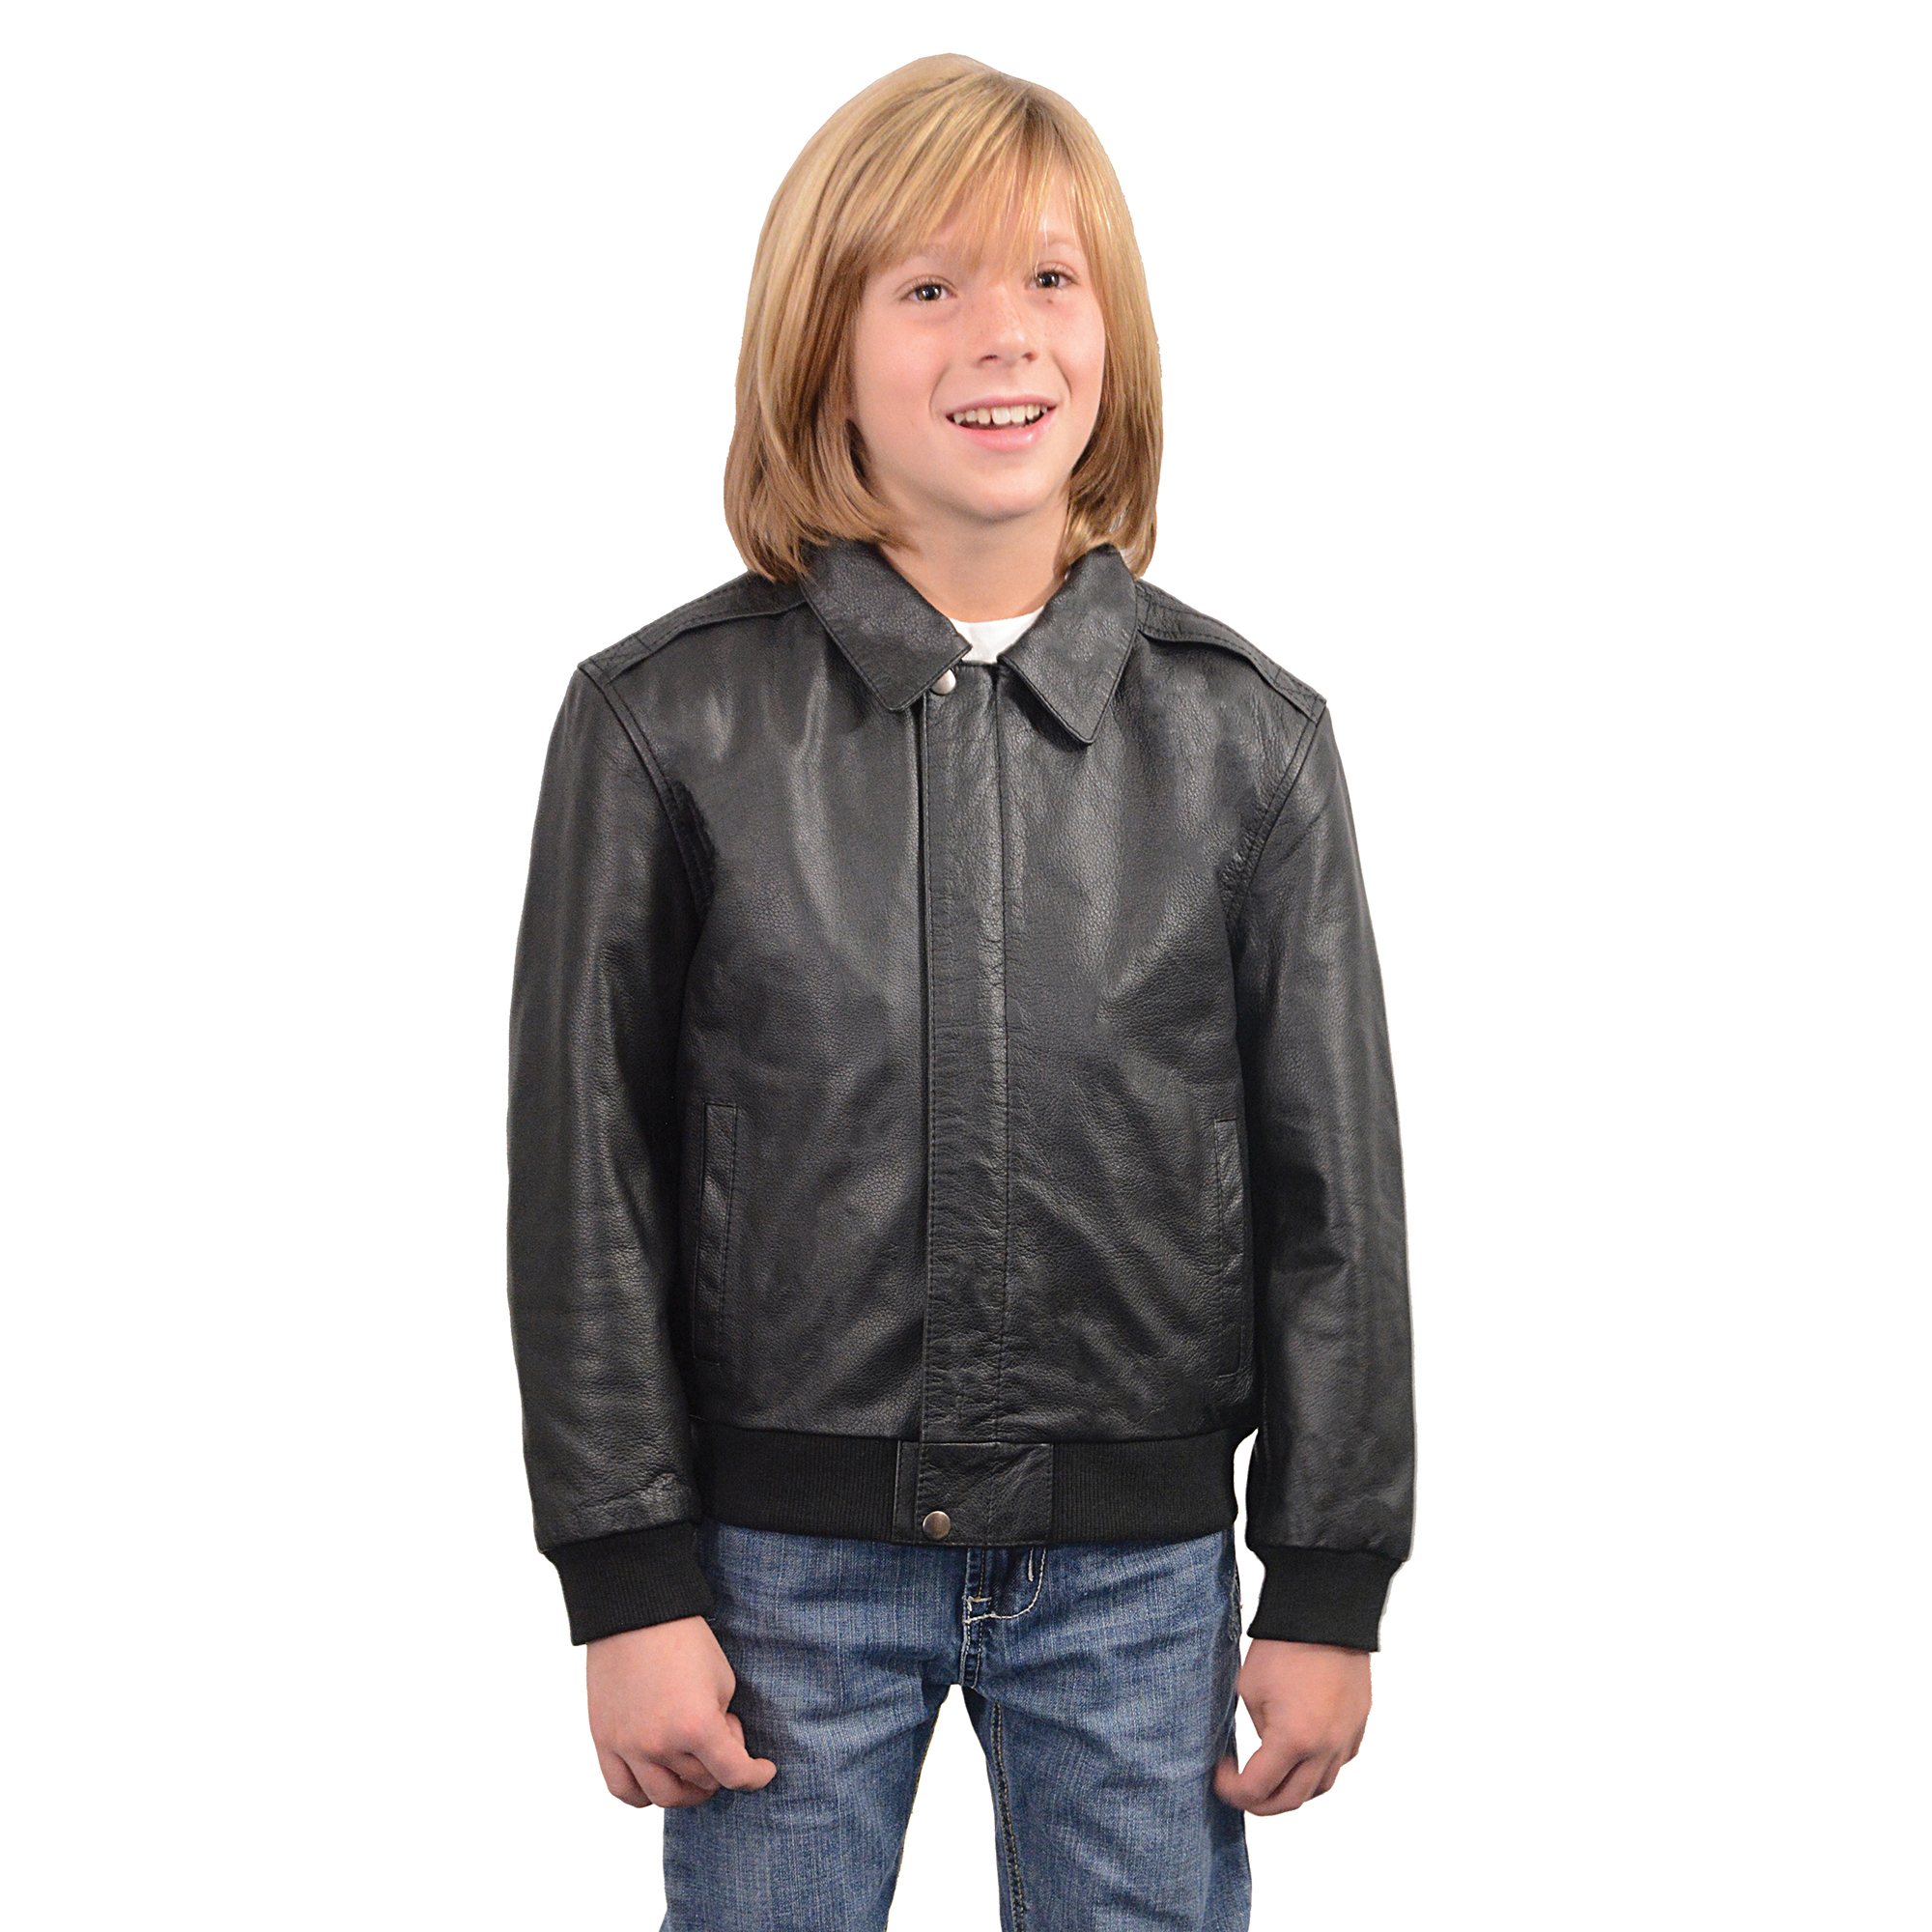 Toddler boy leather jacket